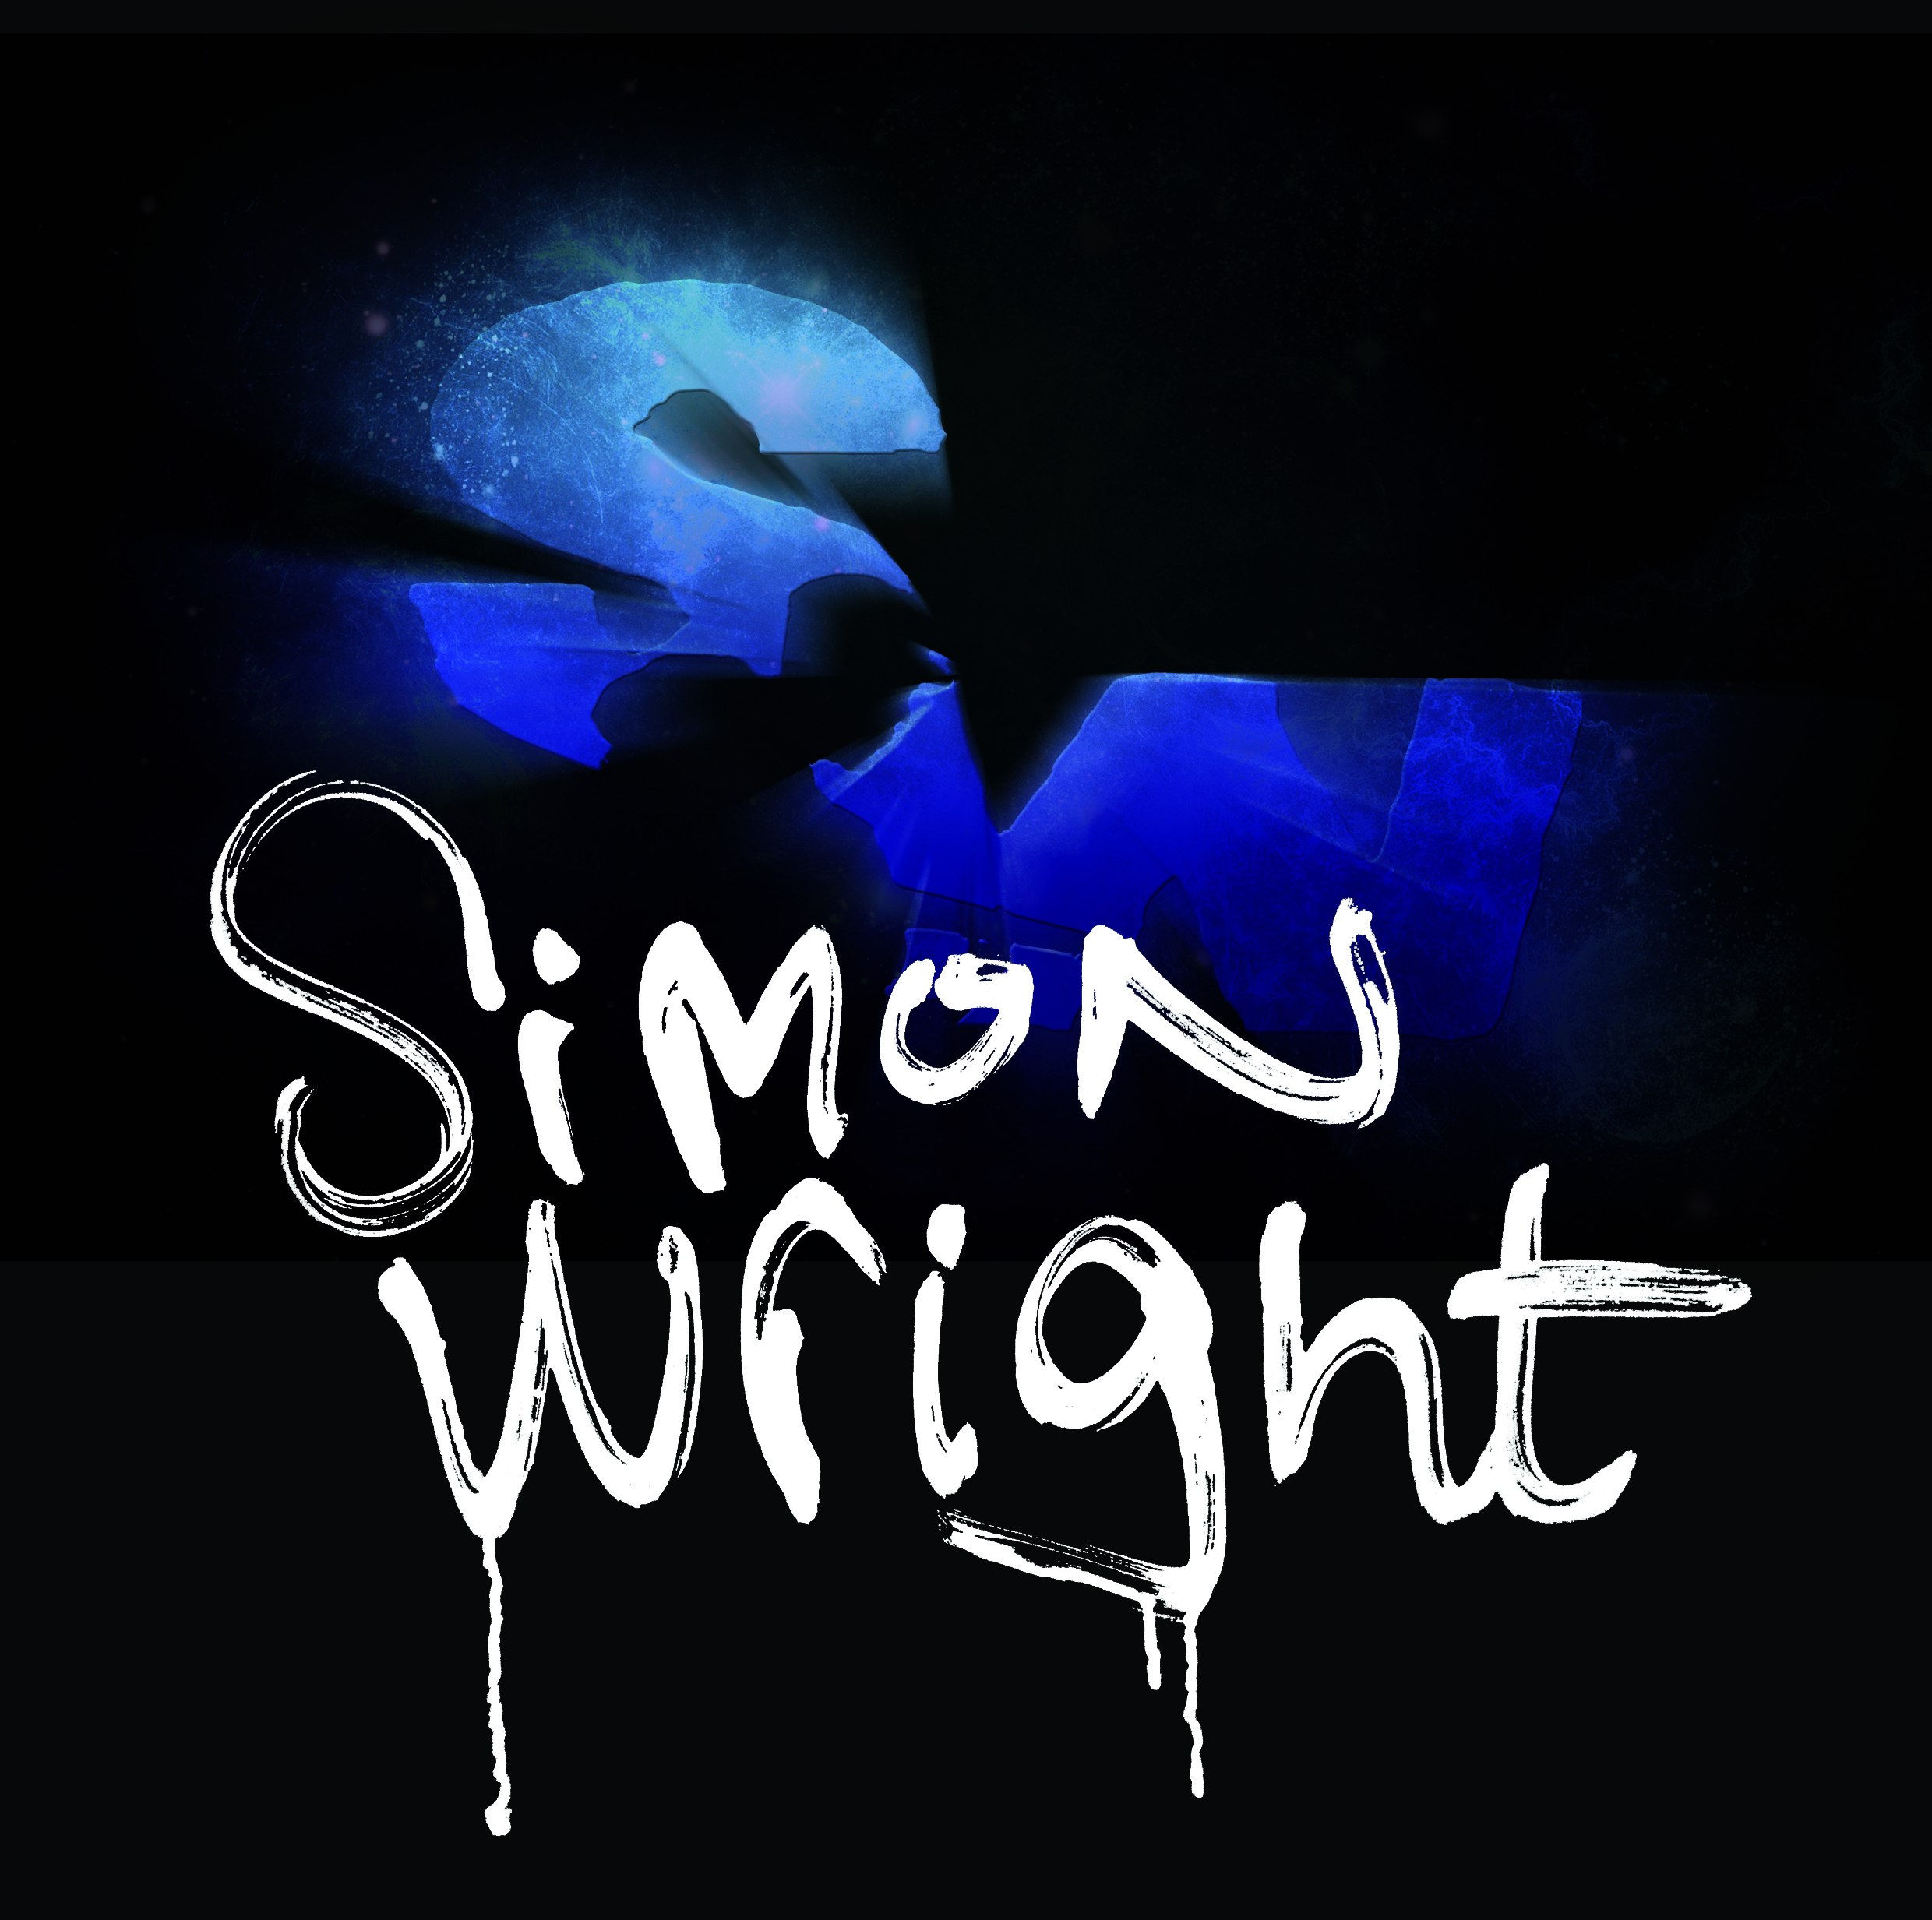 Simon Wright - looptheworld